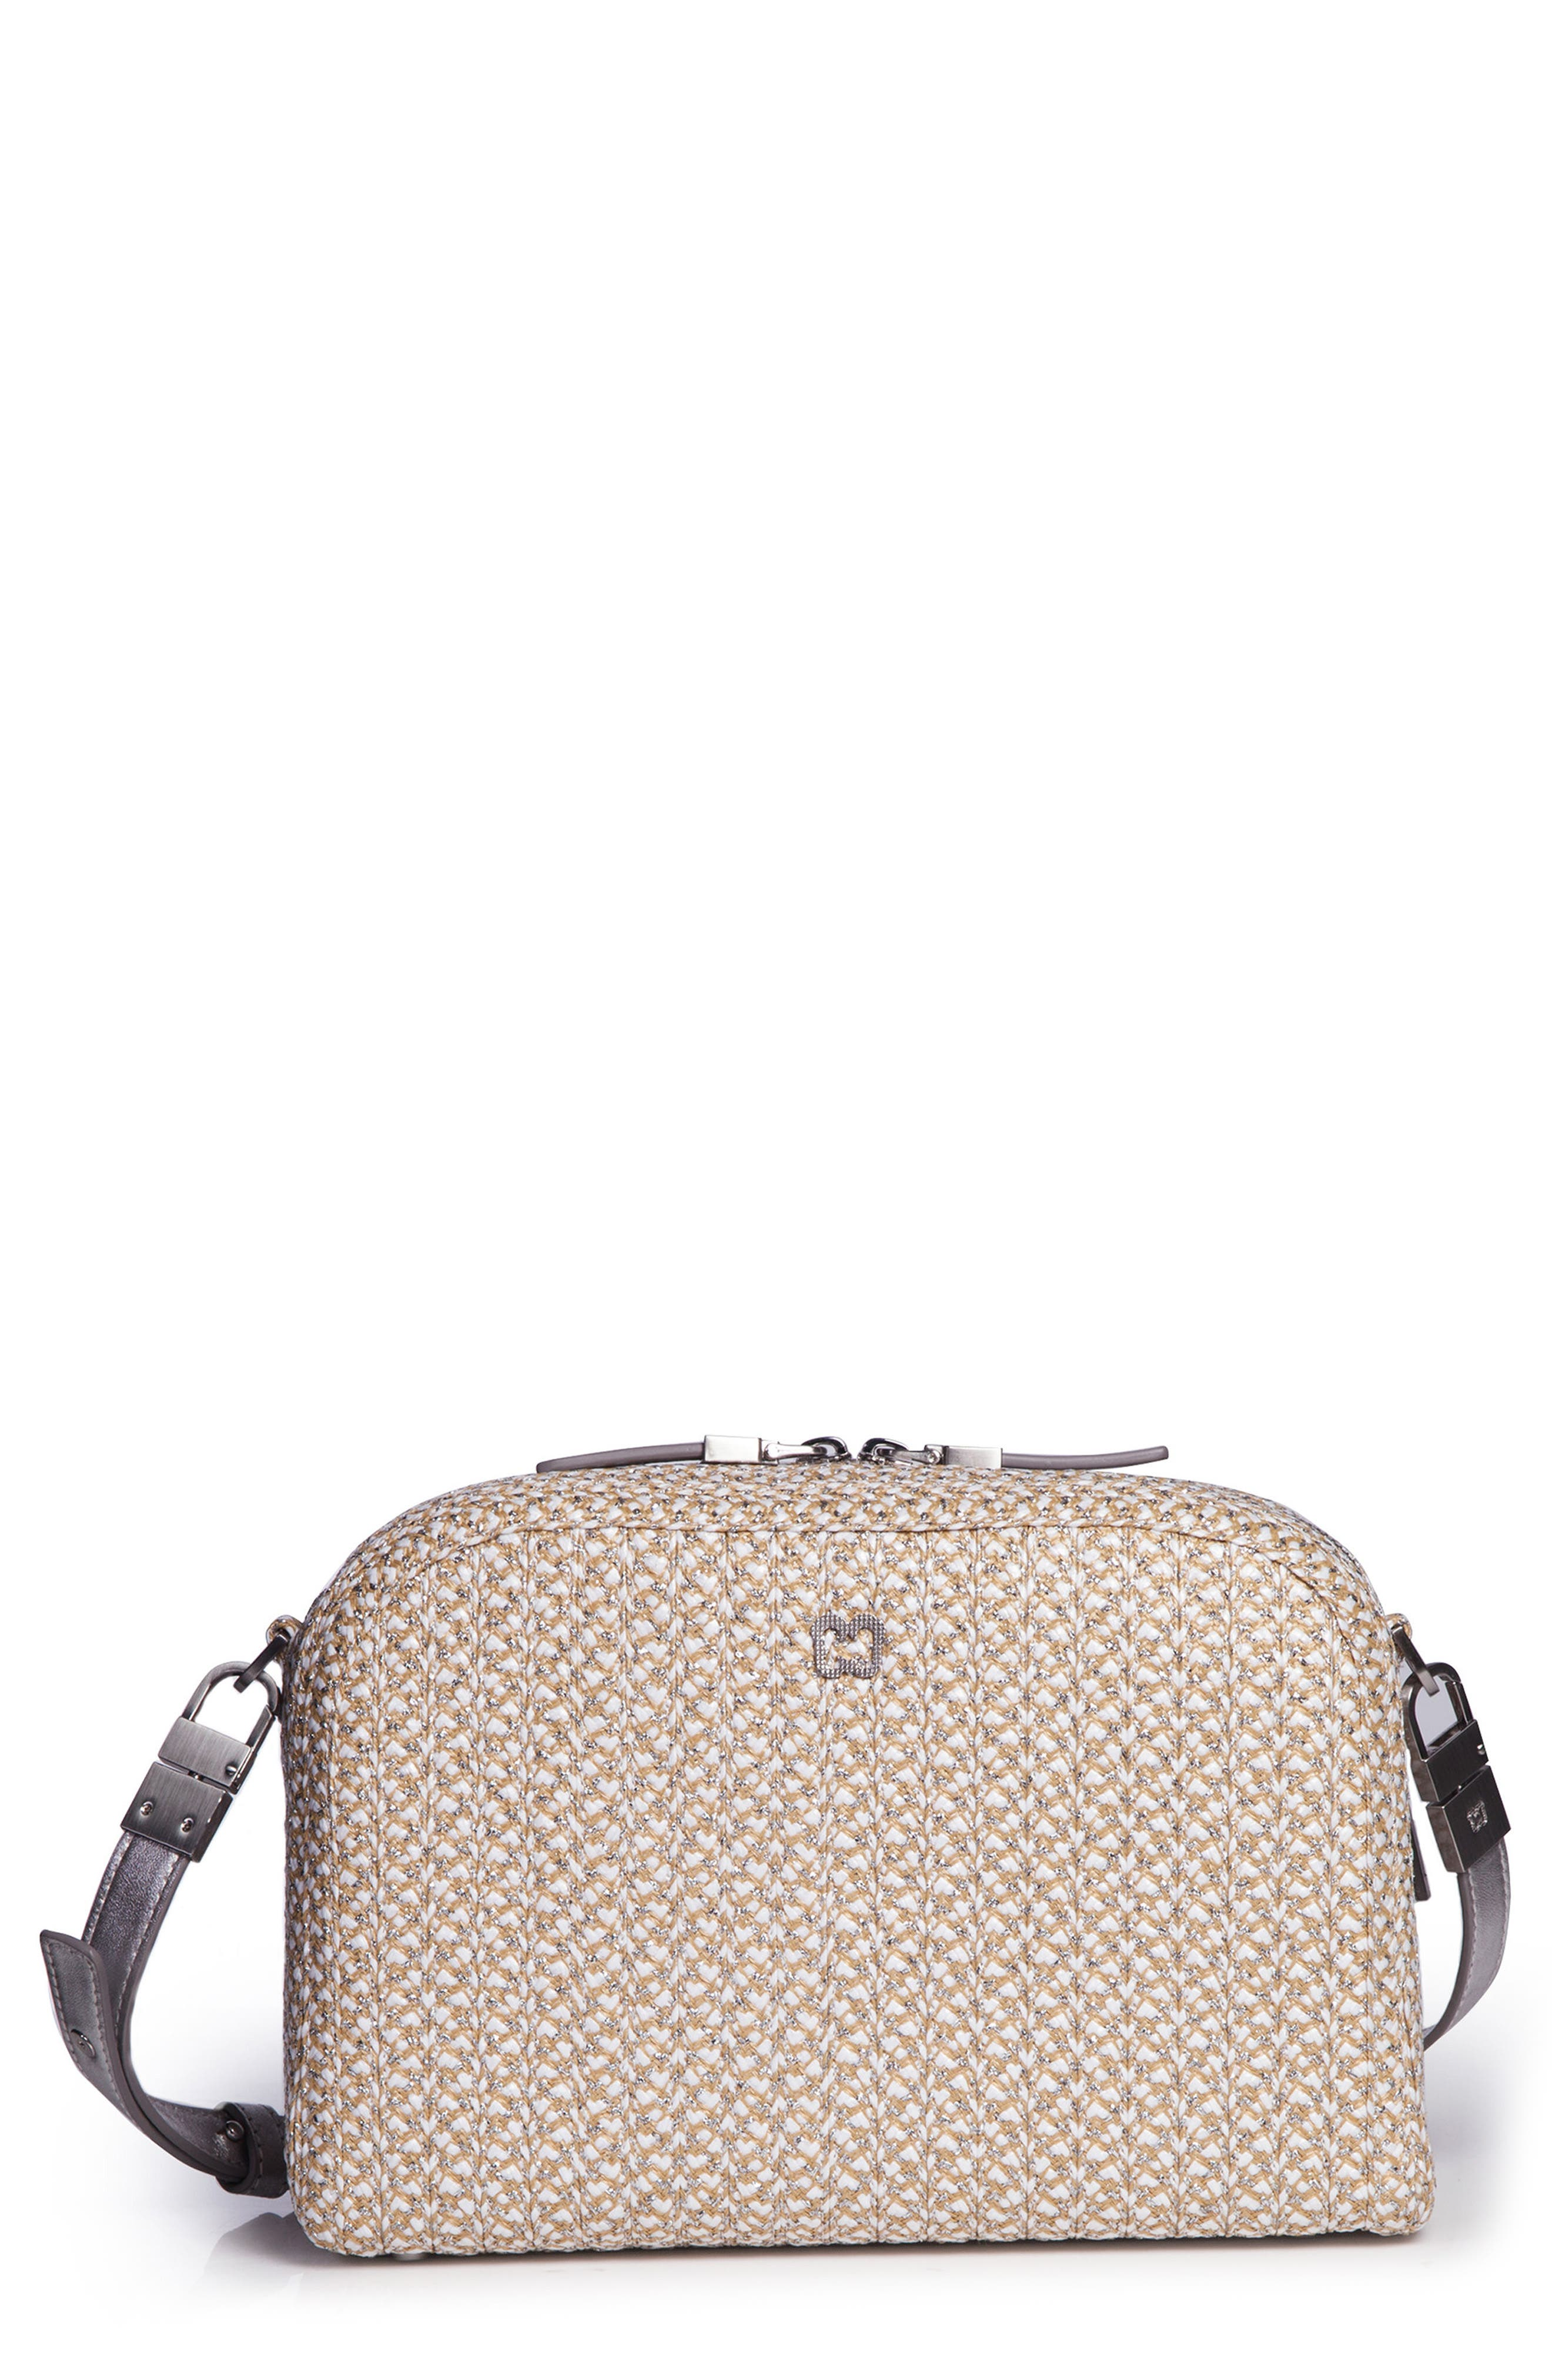 Squishee<sup>®</sup> Courbe Crossbody Bag,                         Main,                         color, FROST/ WHITE